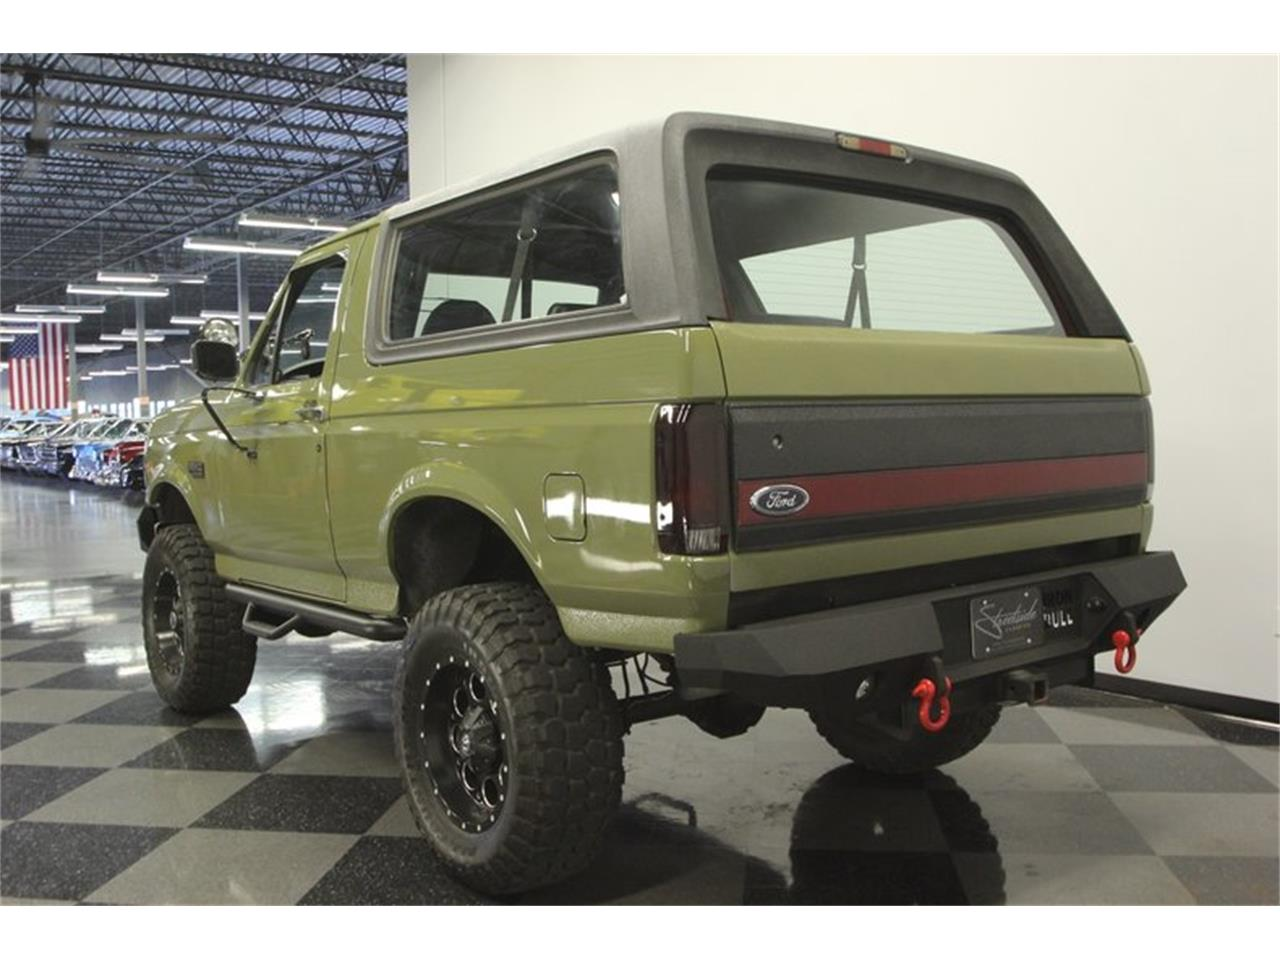 1996 Ford Bronco for sale in Lutz, FL – photo 8